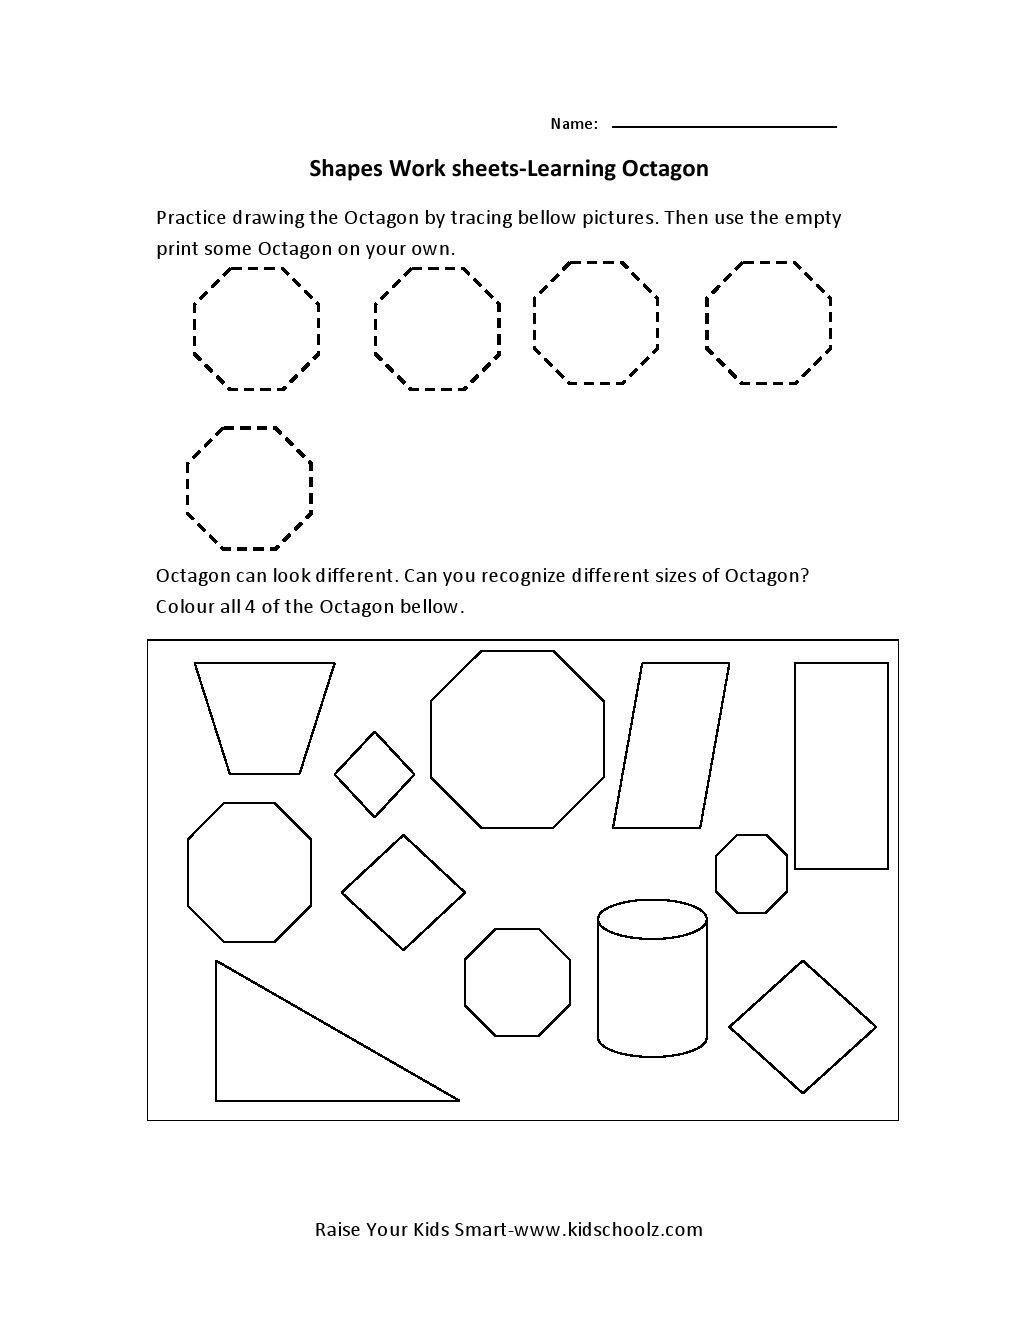 Worksheets Hexagon Worksheet octagon worksheets for preschoolers shape worksheet http learning shapes kidschoolz com